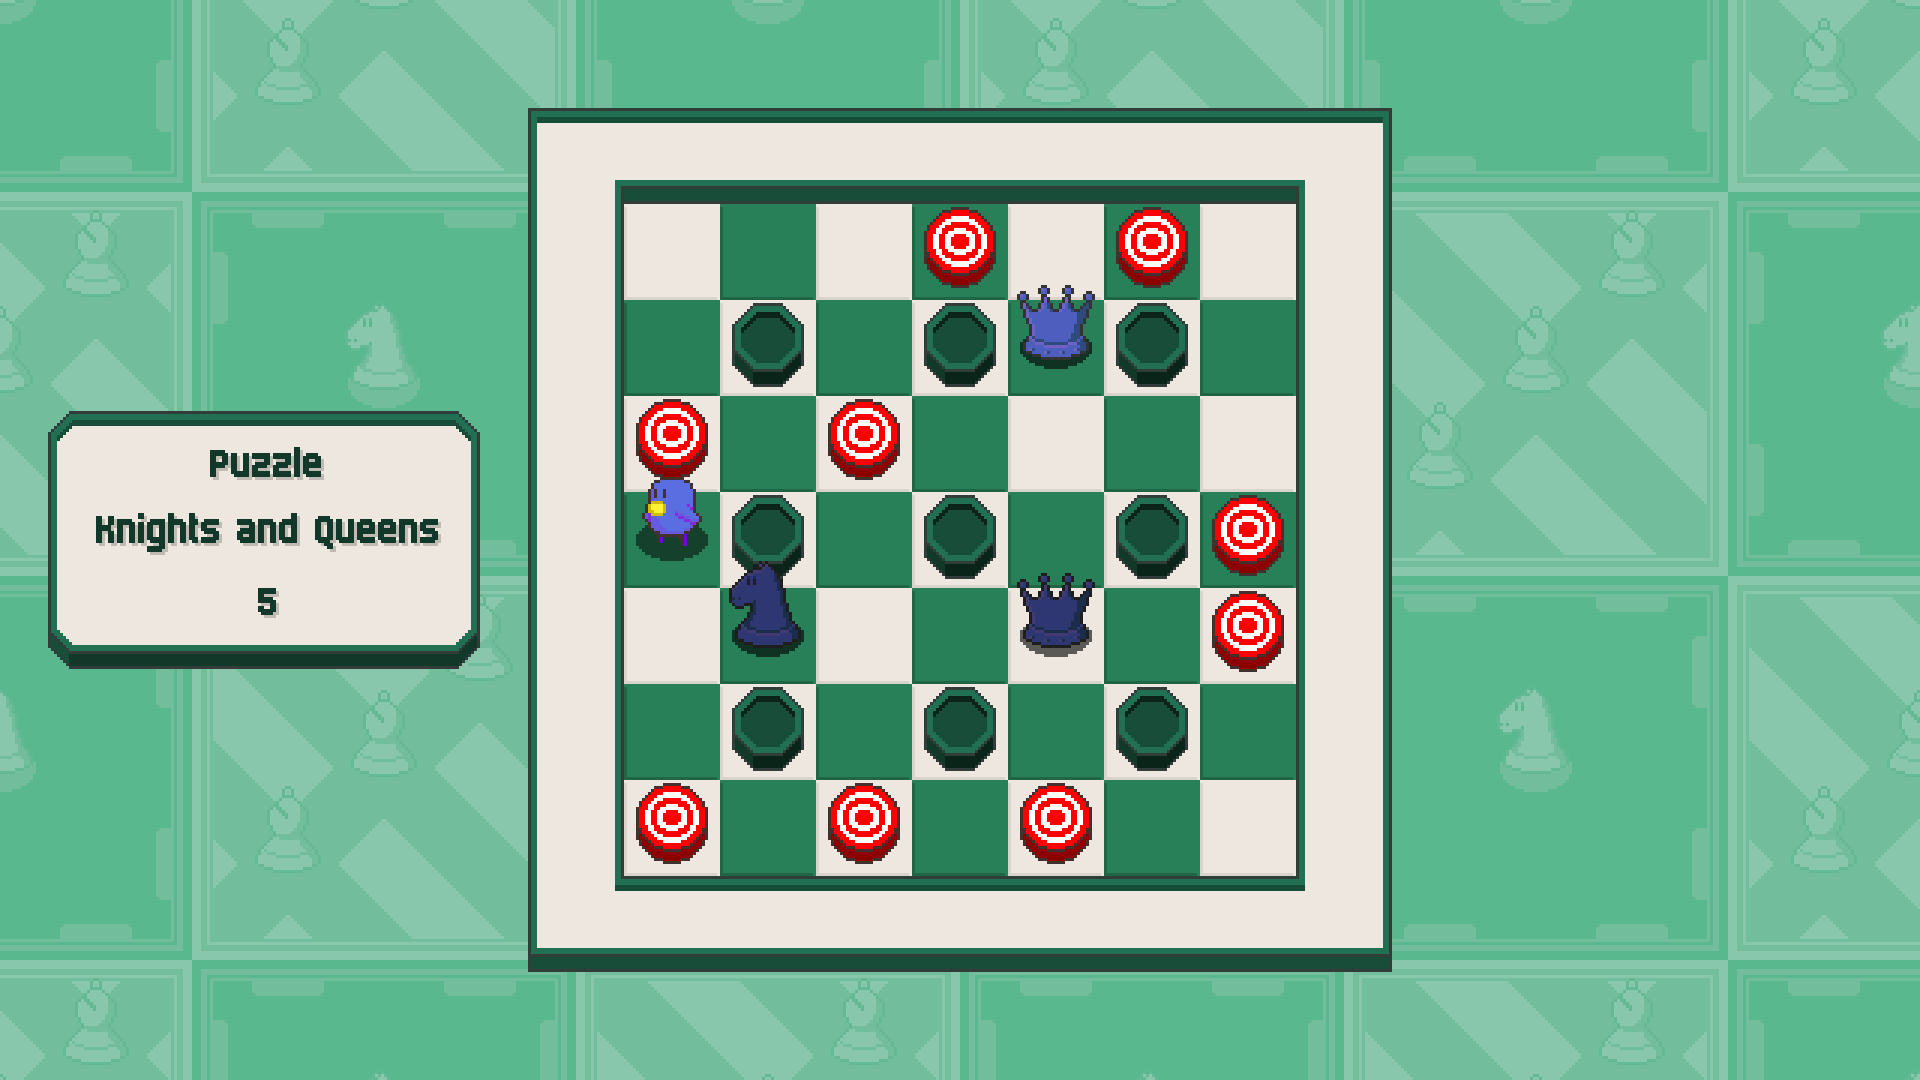 Chessplosion - Puzzle Solution Guide + Achievements Walkthrough - Grandblaster: Knights and Queens - 22D6D63